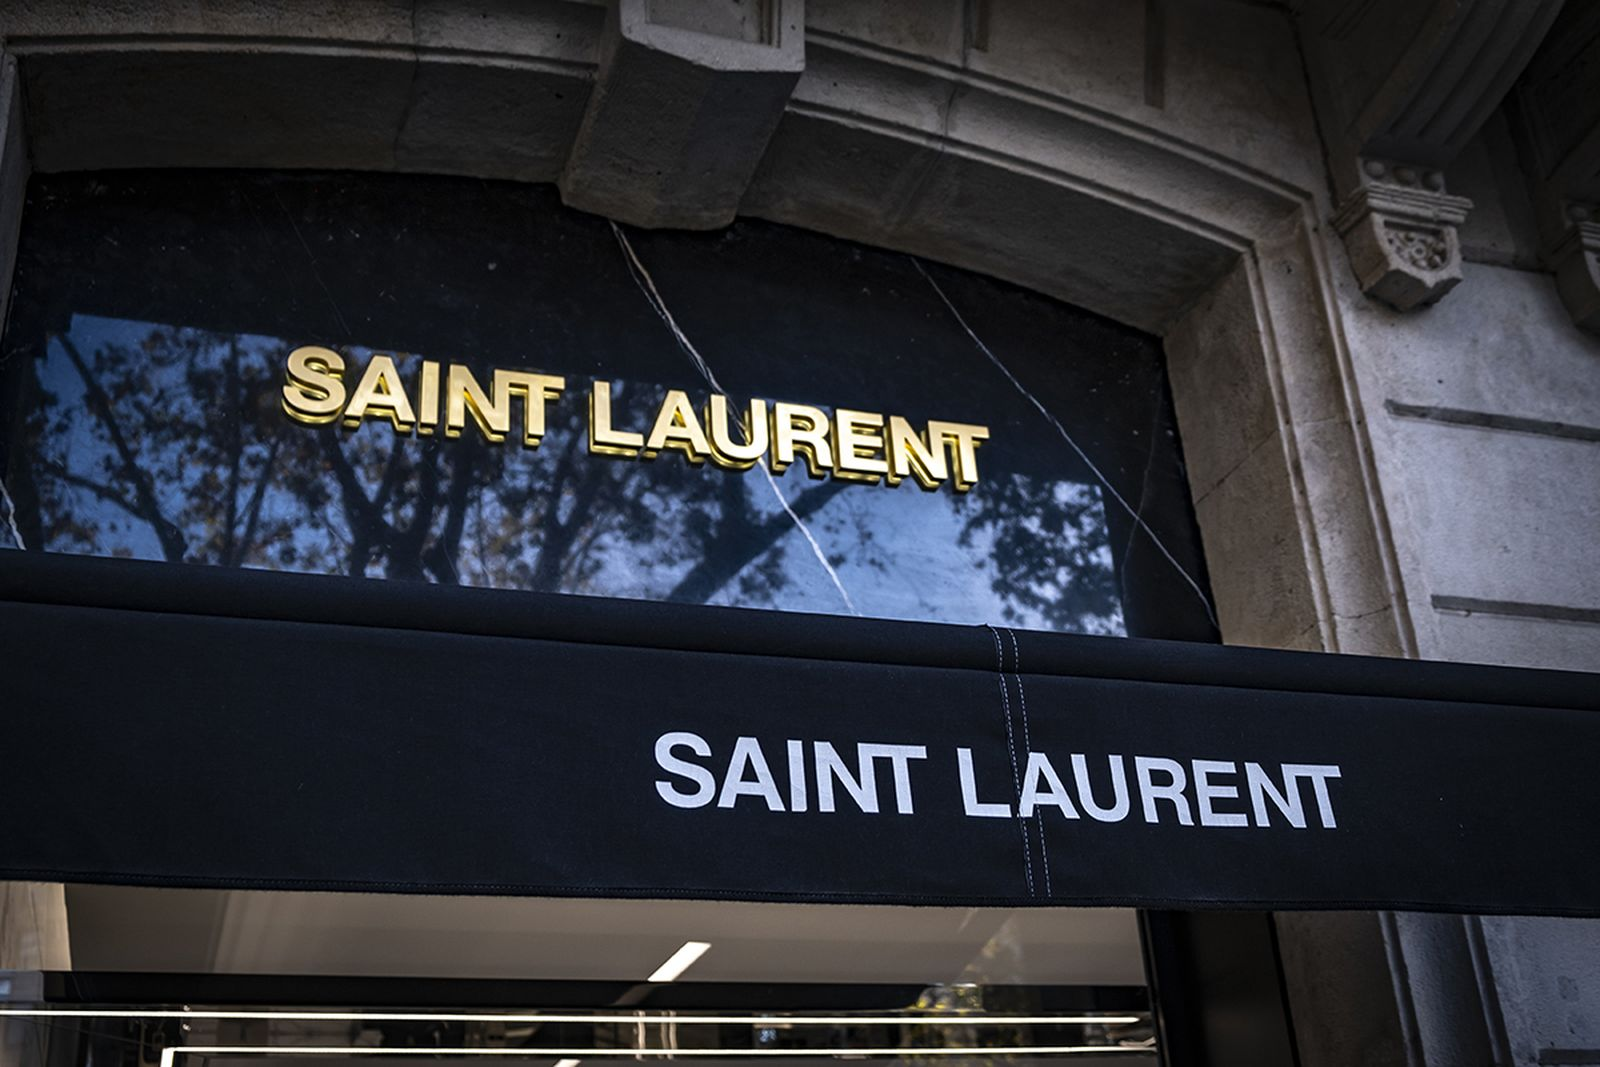 Saint Laurent store sign